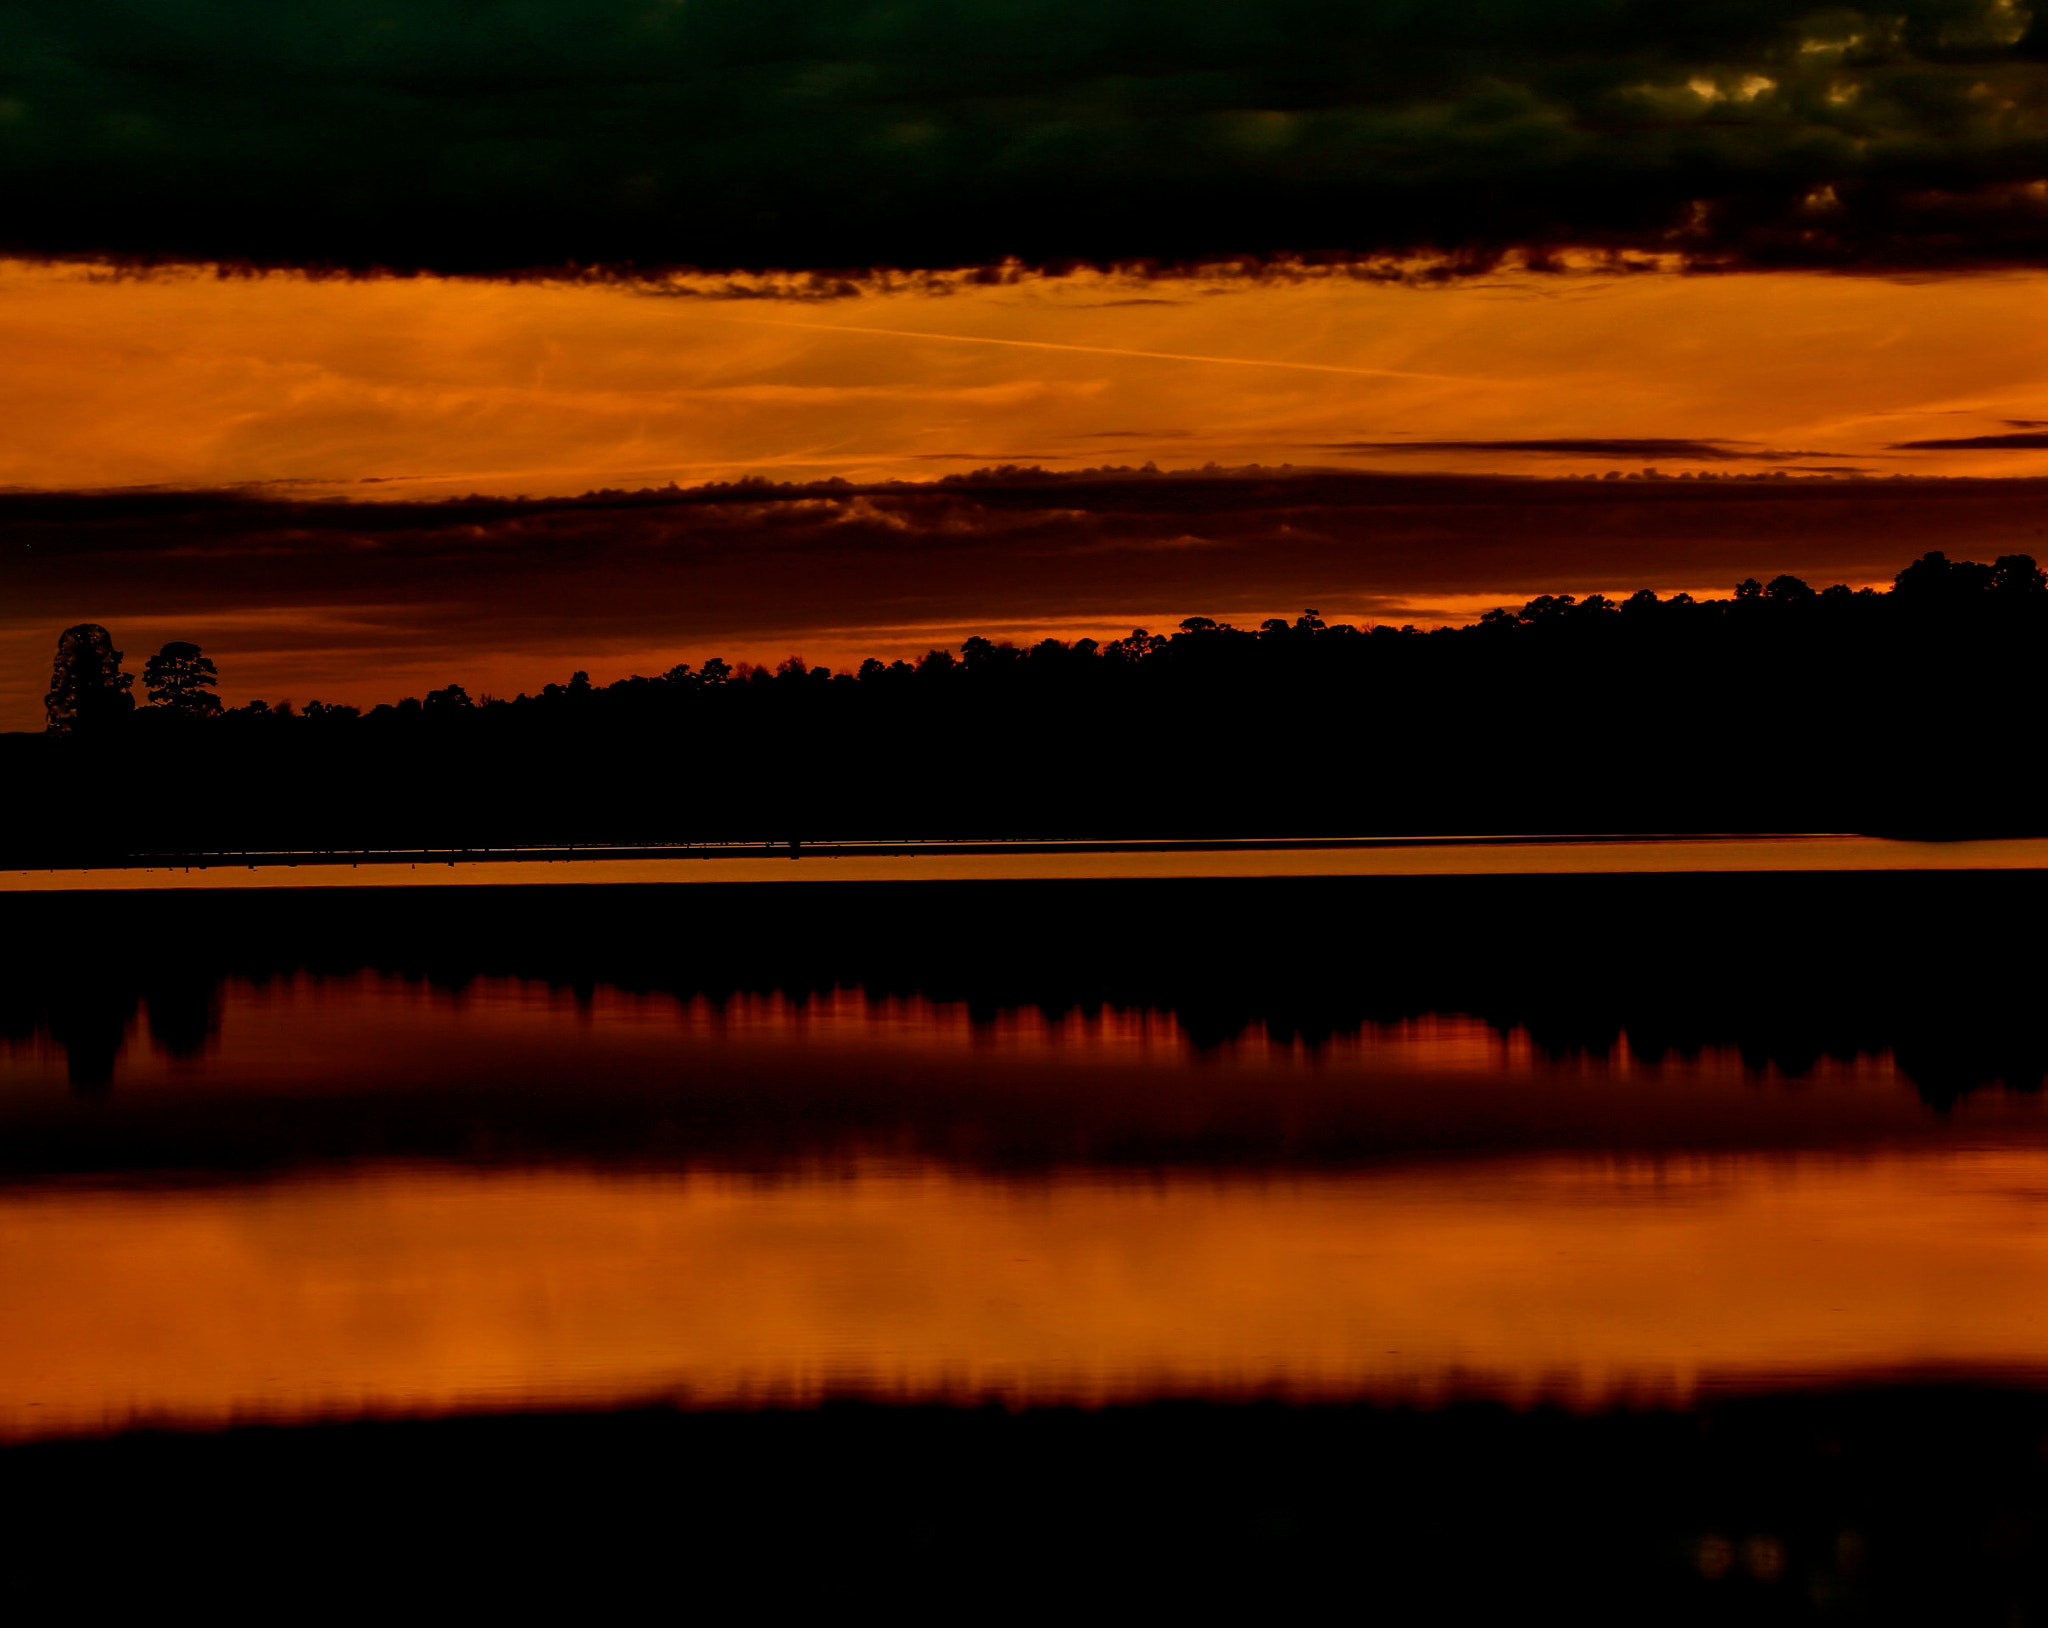 Photograph Reflections by Matthew Bailey on 500px